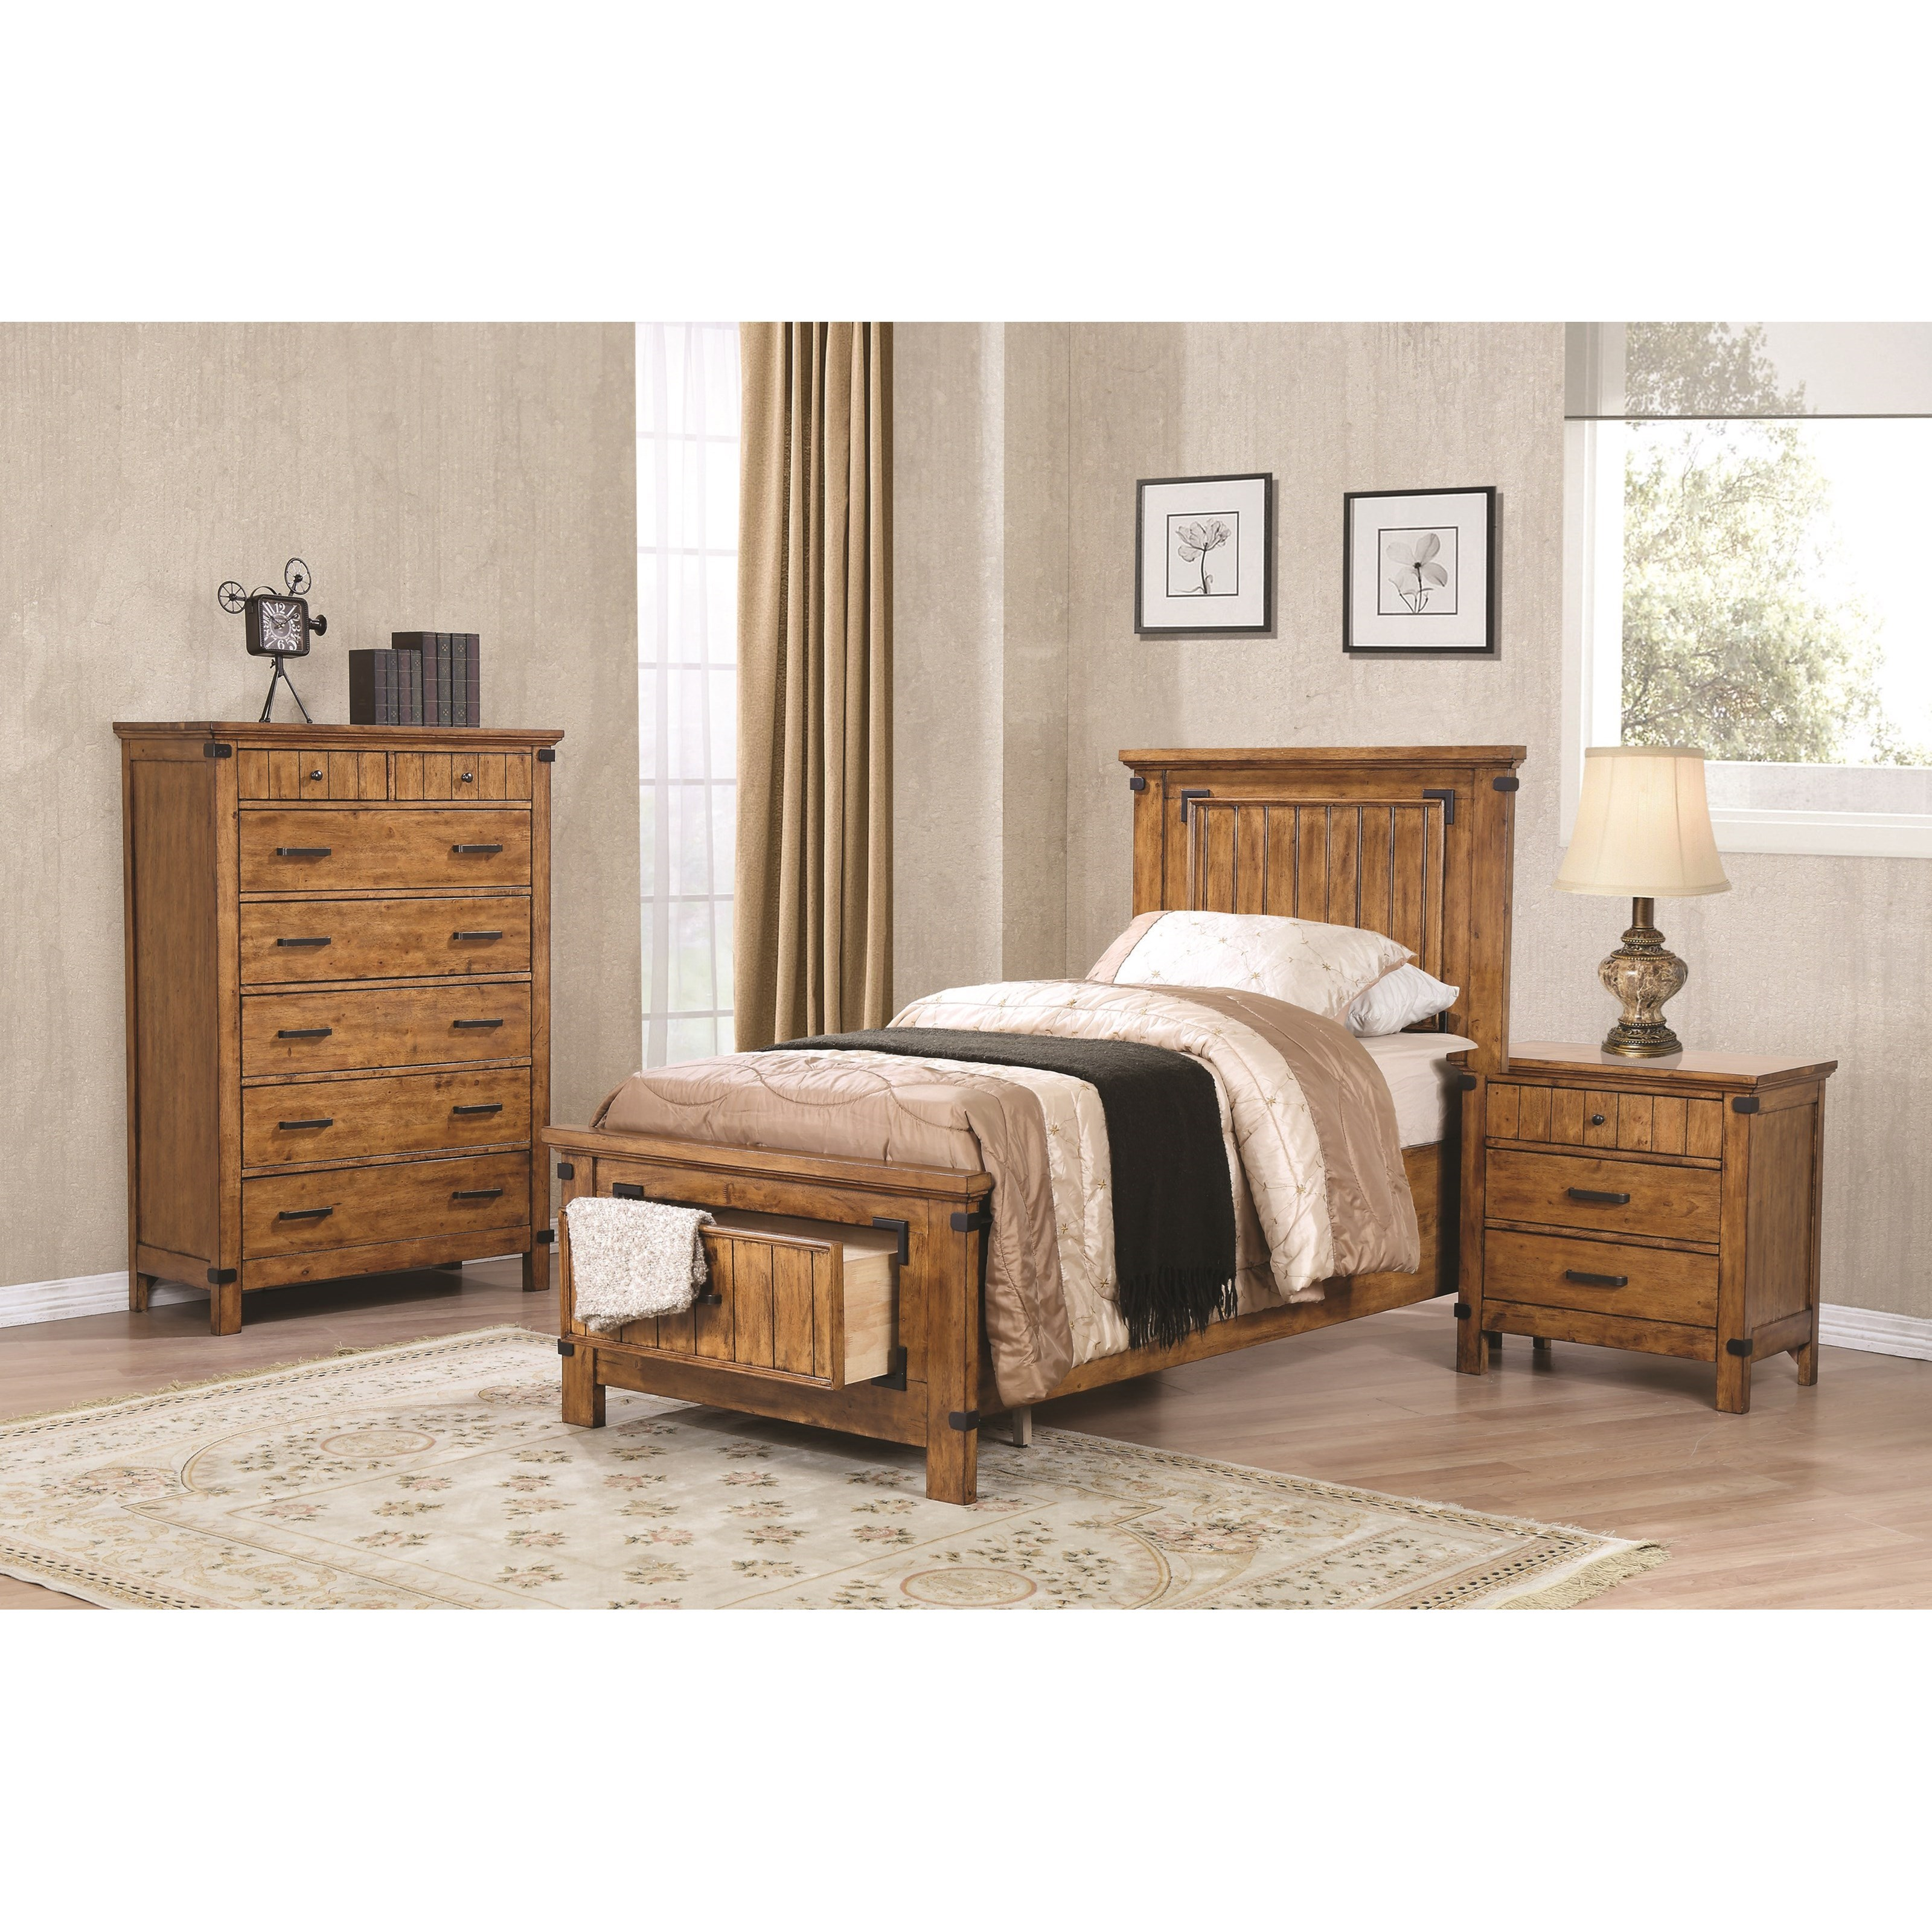 Coaster Brenner Twin Bedroom Group - Item Number: 205260 T Bedroom Group 4